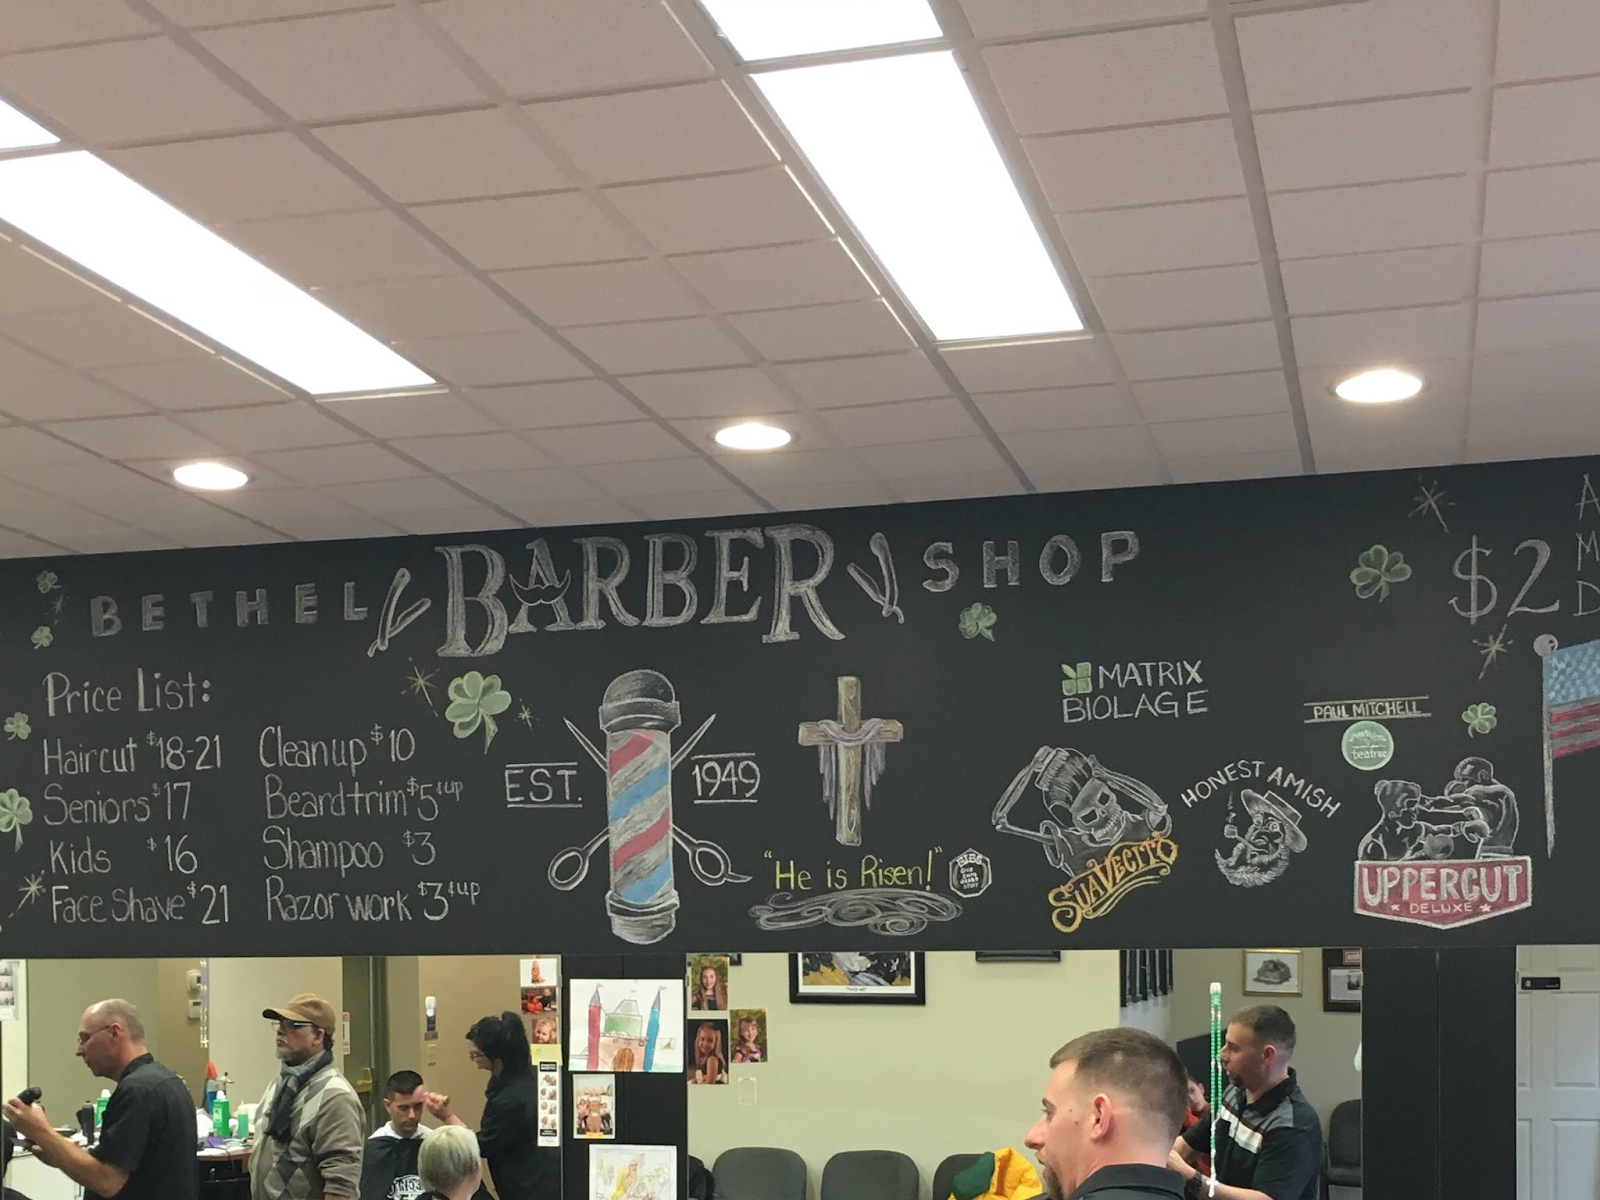 Bethel Barber Shop